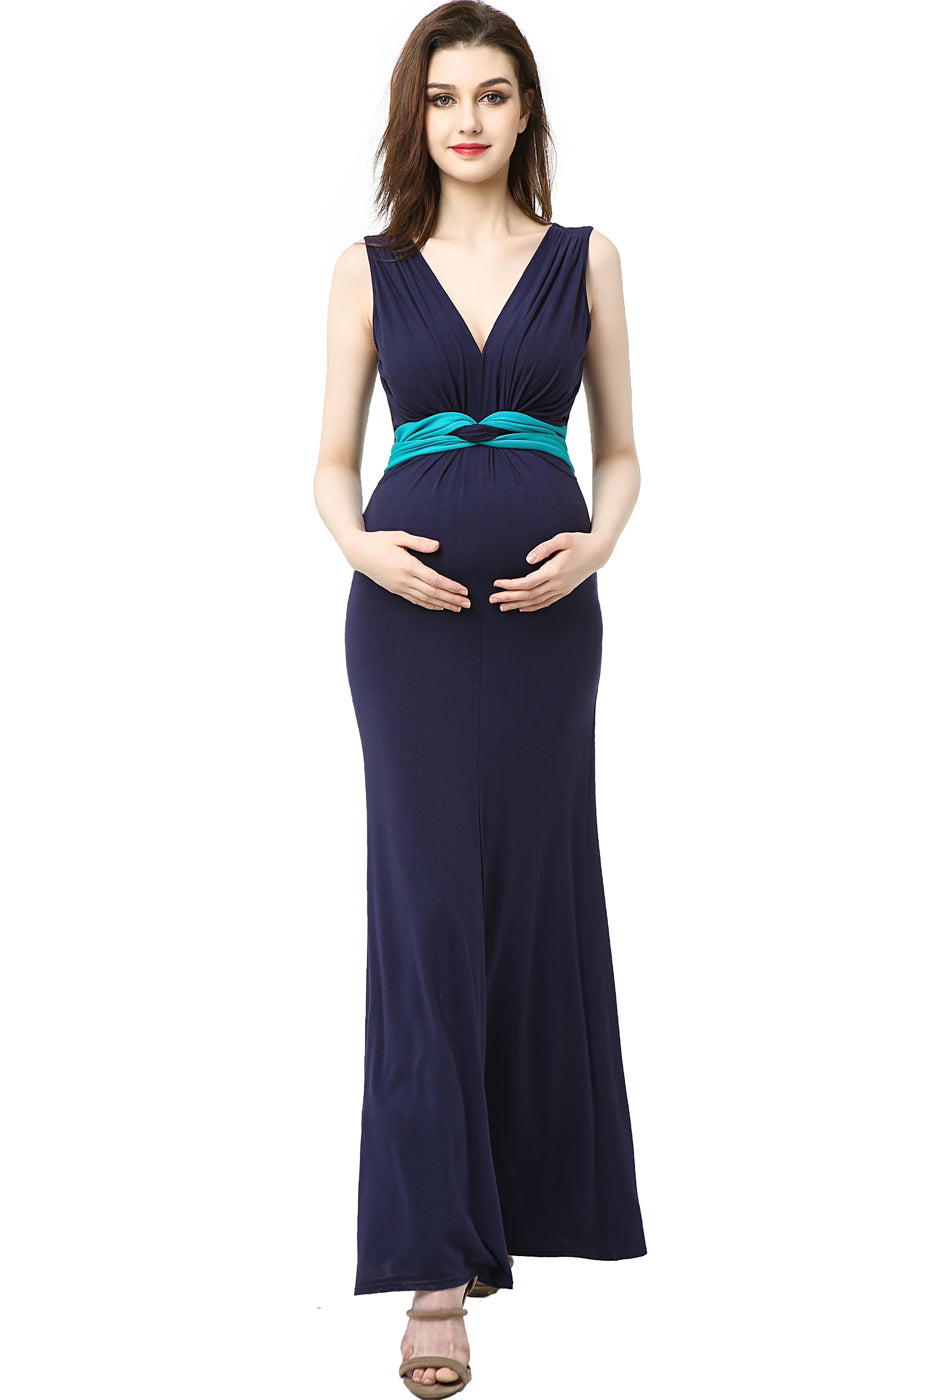 8a63fb3e29319 Women's Maternity